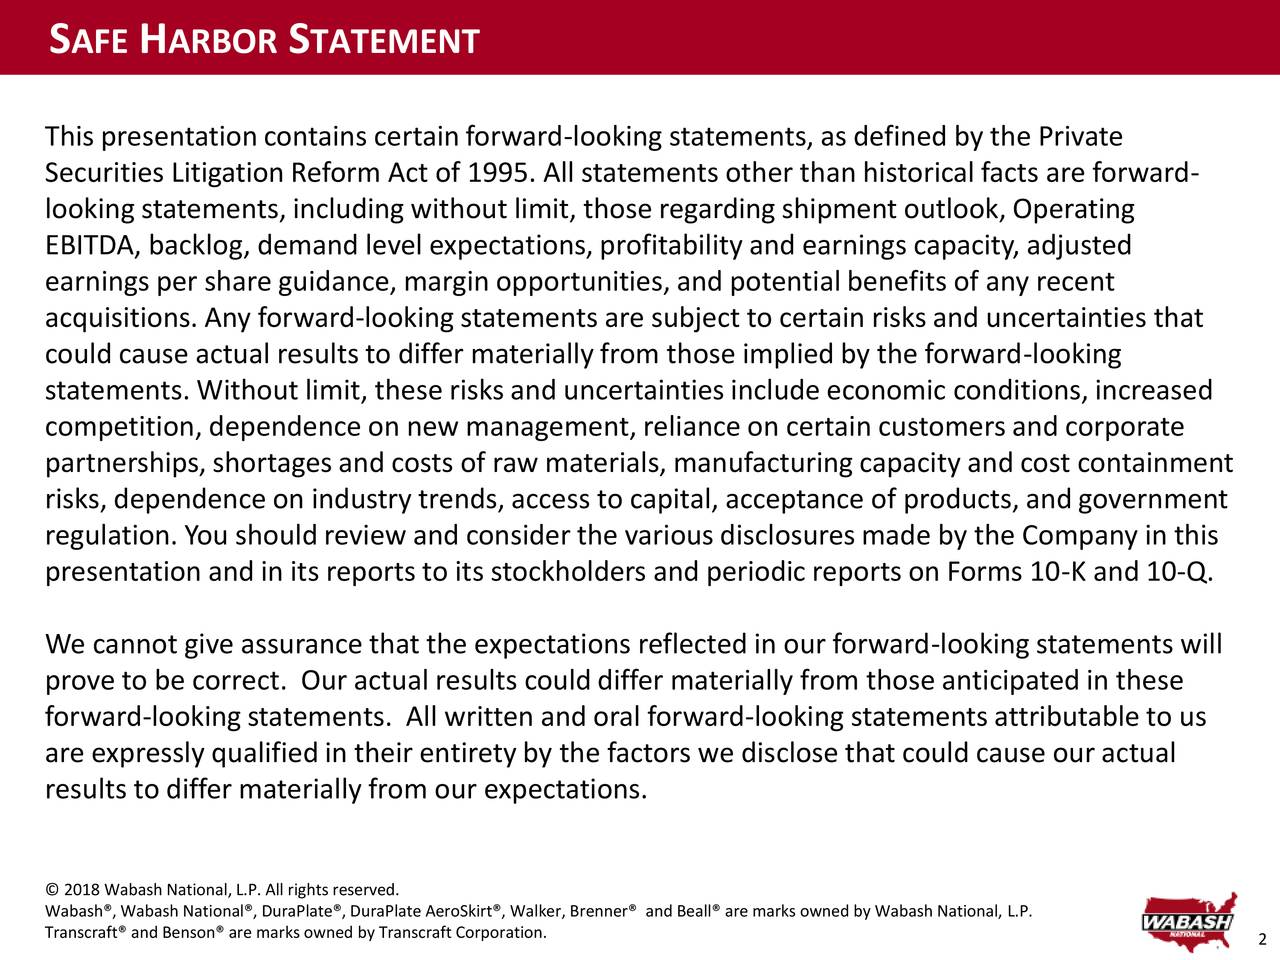 This presentation contains certain forward-looking statements, as defined by the Private Securities Litigation Reform Act of 1995. All statements other than historicalfacts are forward- looking statements, including without limit, those regarding shipment outlook, Operating EBITDA, backlog, demand level expectations, profitability and earnings capacity, adjusted earnings per share guidance, margin opportunities, and potentialbenefits of any recent acquisitions. Any forward-looking statements are subject to certain risks and uncertainties that could cause actual results to differ materially from those implied by the forward-looking statements. Without limit, these risks and uncertainties include economic conditions, increased competition, dependence on new management, reliance on certain customers and corporate partnerships, shortages and costs of raw materials, manufacturing capacity and cost containment risks, dependence on industry trends, access to capital, acceptance of products, and government regulation. You should review and consider the various disclosures made by the Company in this presentation and in its reports to its stockholders and periodic reports on Forms 10-K and 10-Q. We cannot give assurance that the expectations reflected in our forward-looking statements will prove to be correct. Our actual results could differ materially from those anticipated in these forward-lookingstatements. All written and oral forward-looking statements attributable to us are expressly qualified in their entirety by the factors we disclose that could cause our actual results to differ materially from our expectations. © 2018 Wabash National, L.P. All rights reserved. Transcraft® and Benson® are marks owned by Transcraft Corporation.r, Brenner® and Beall® are marks owned by Wabash National, L.P.